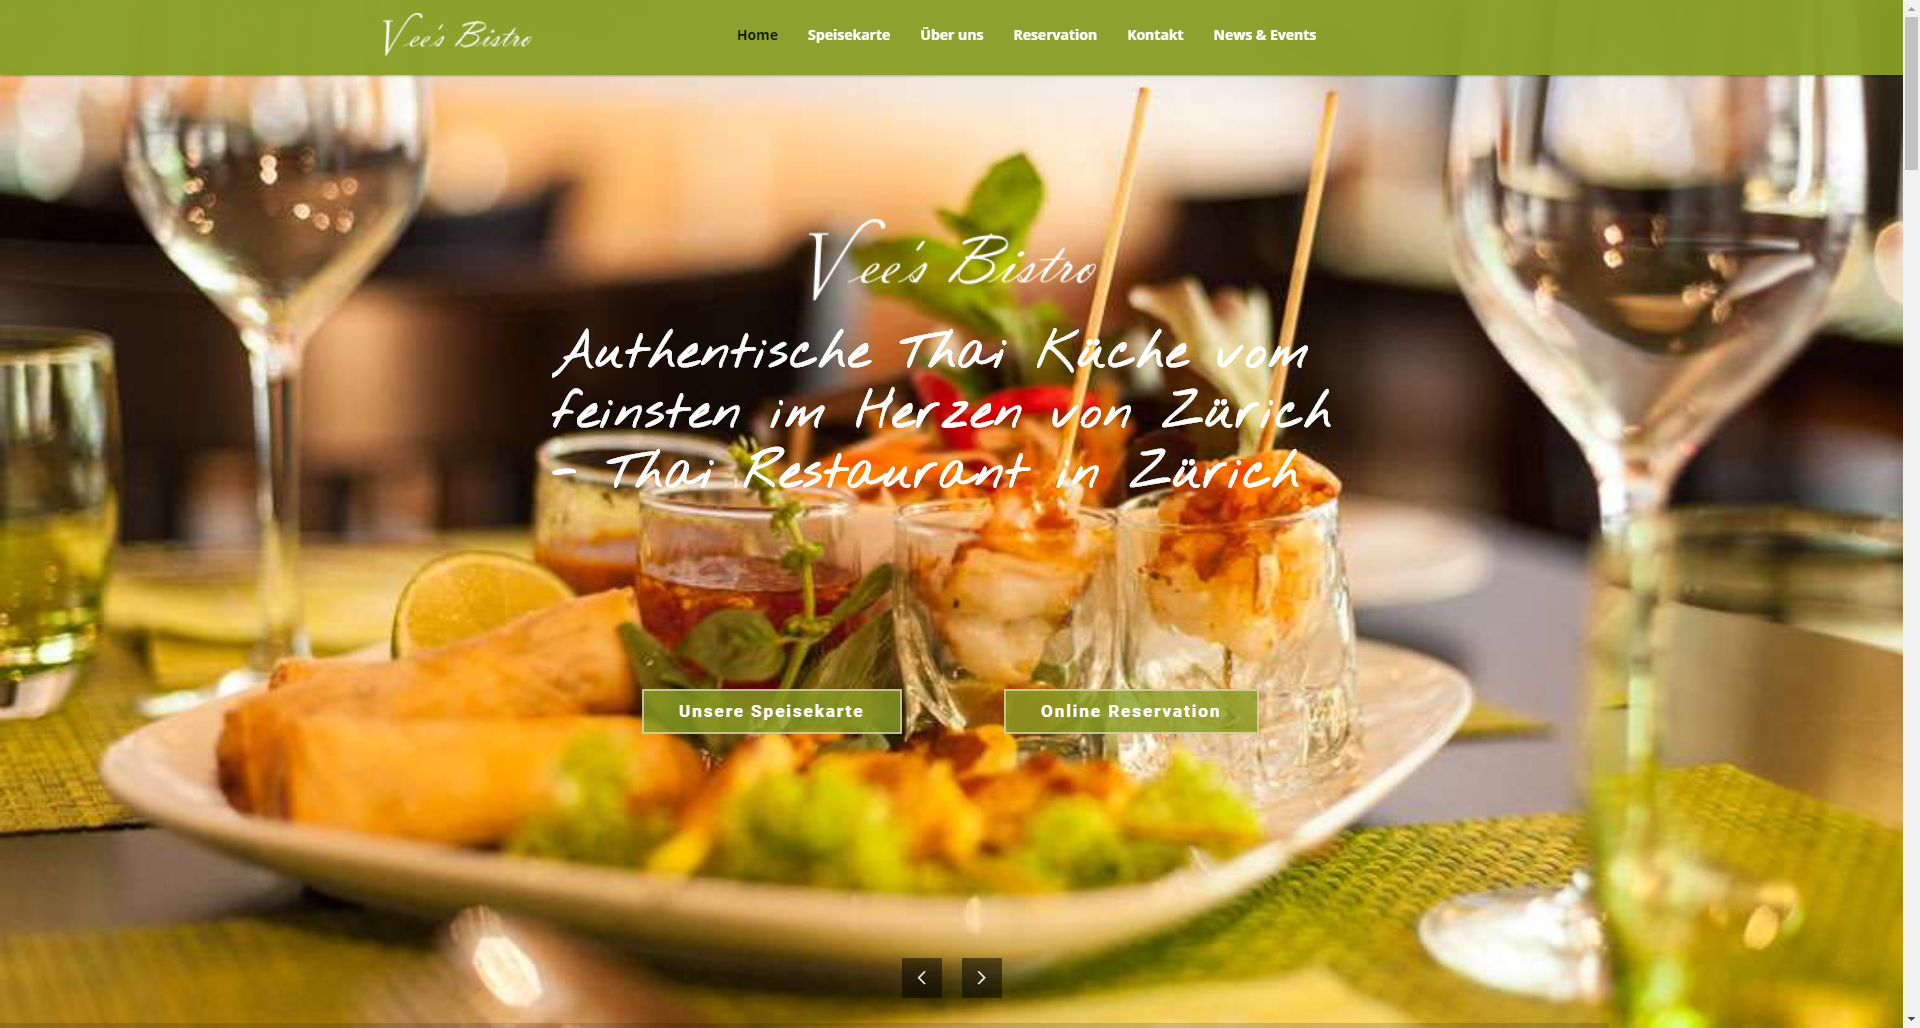 Vees Bistro - Thai Restaurant und Take away